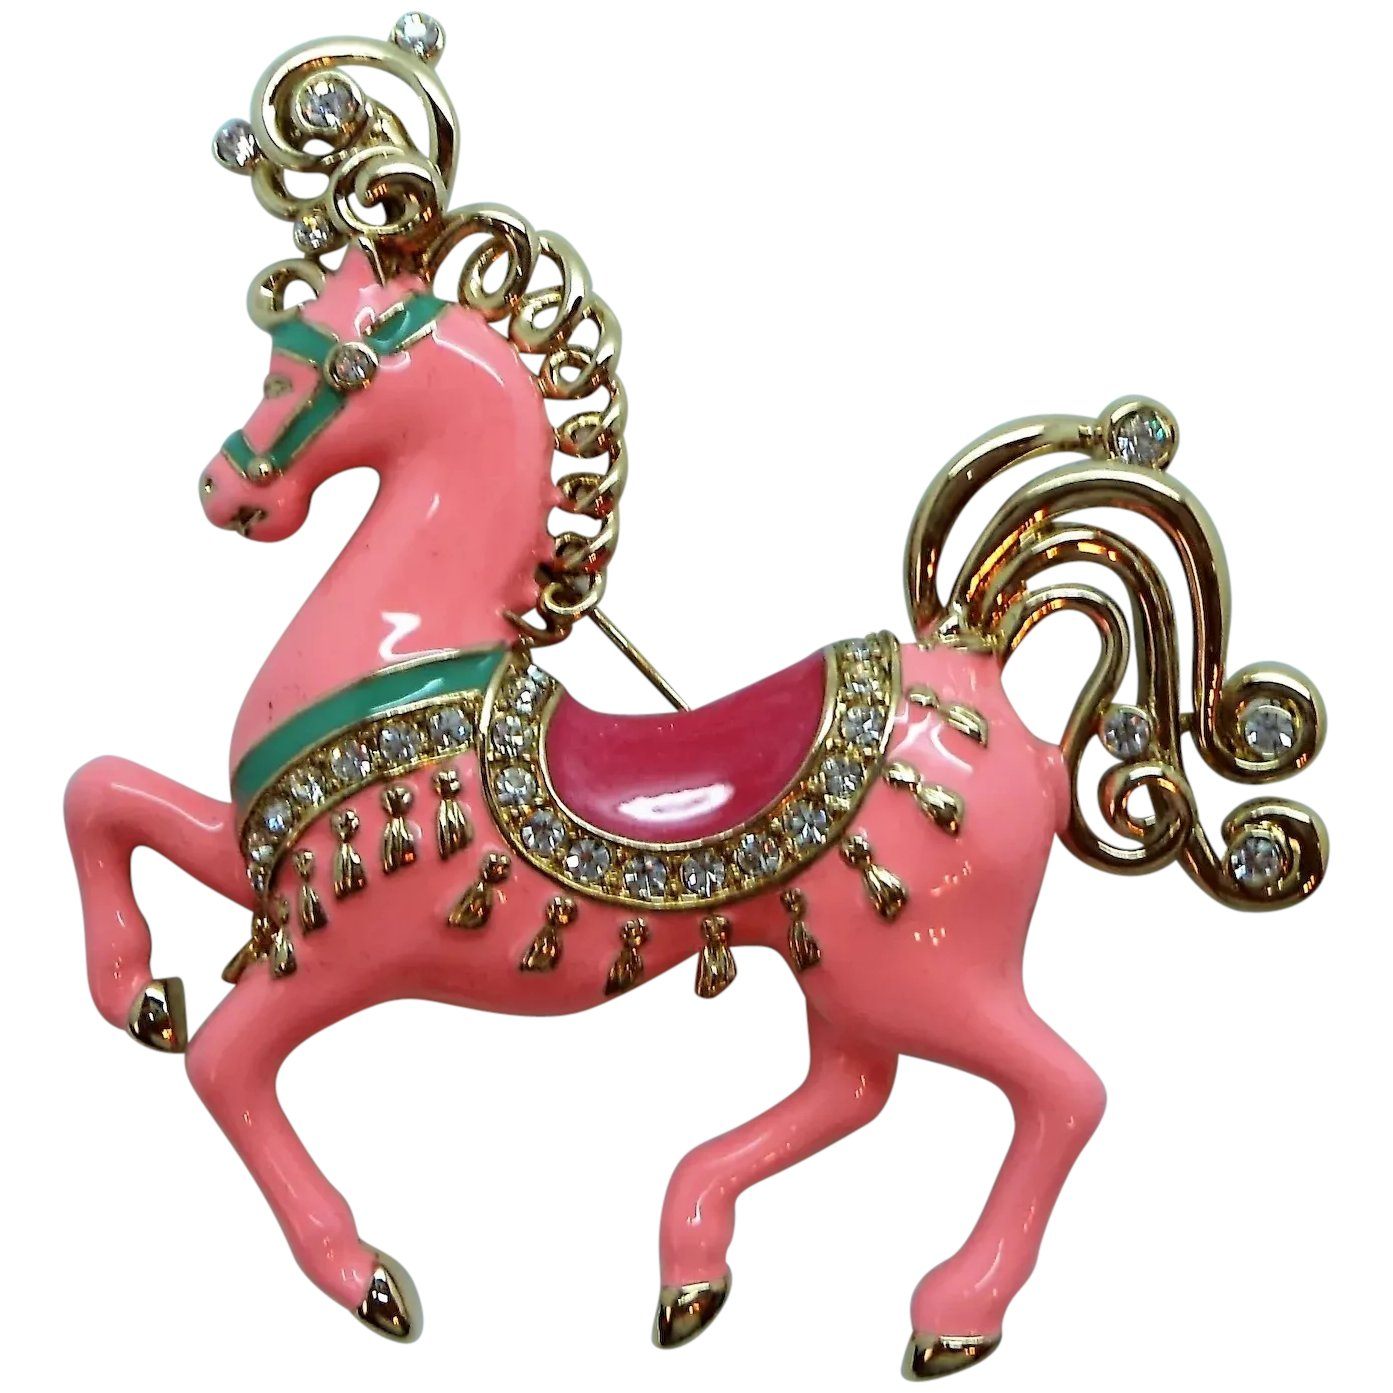 Bob Mackie Pink Carousel Horse Brooch Mint In Box Elaine S Antiques Collectibles Ruby Lane